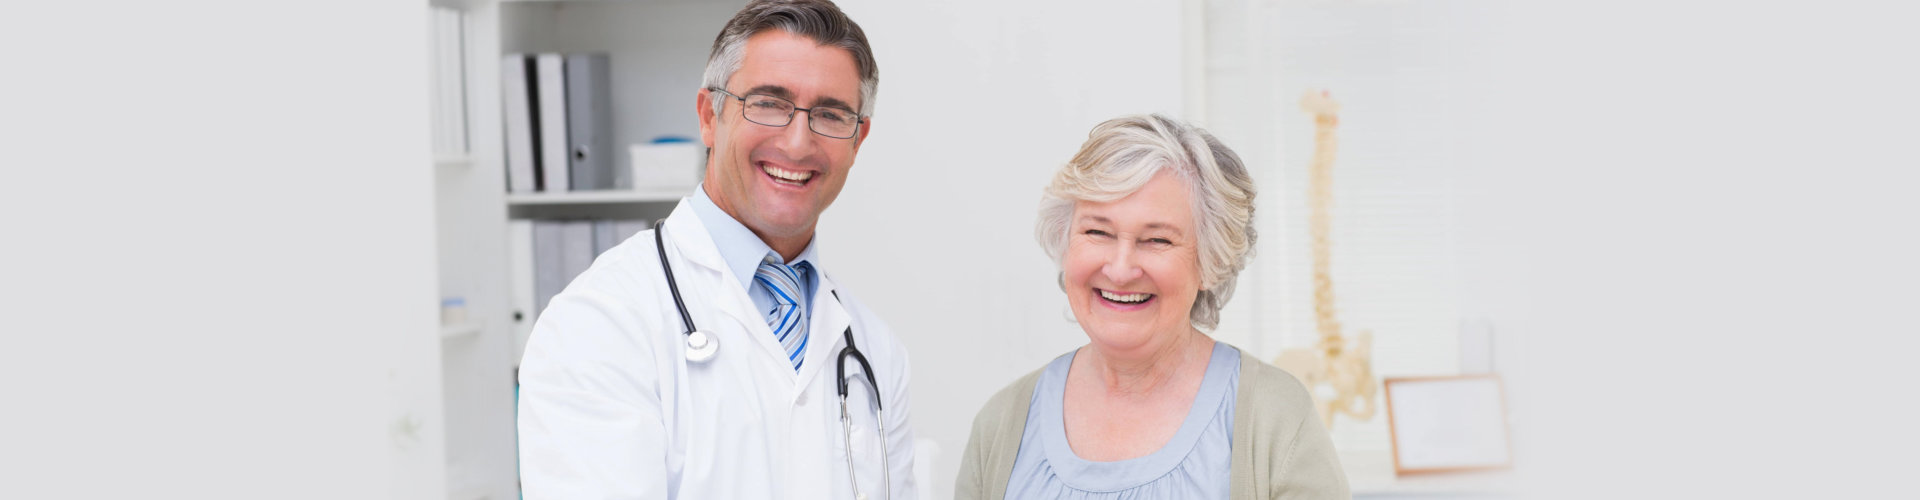 portrait of happy male doctor and female patient